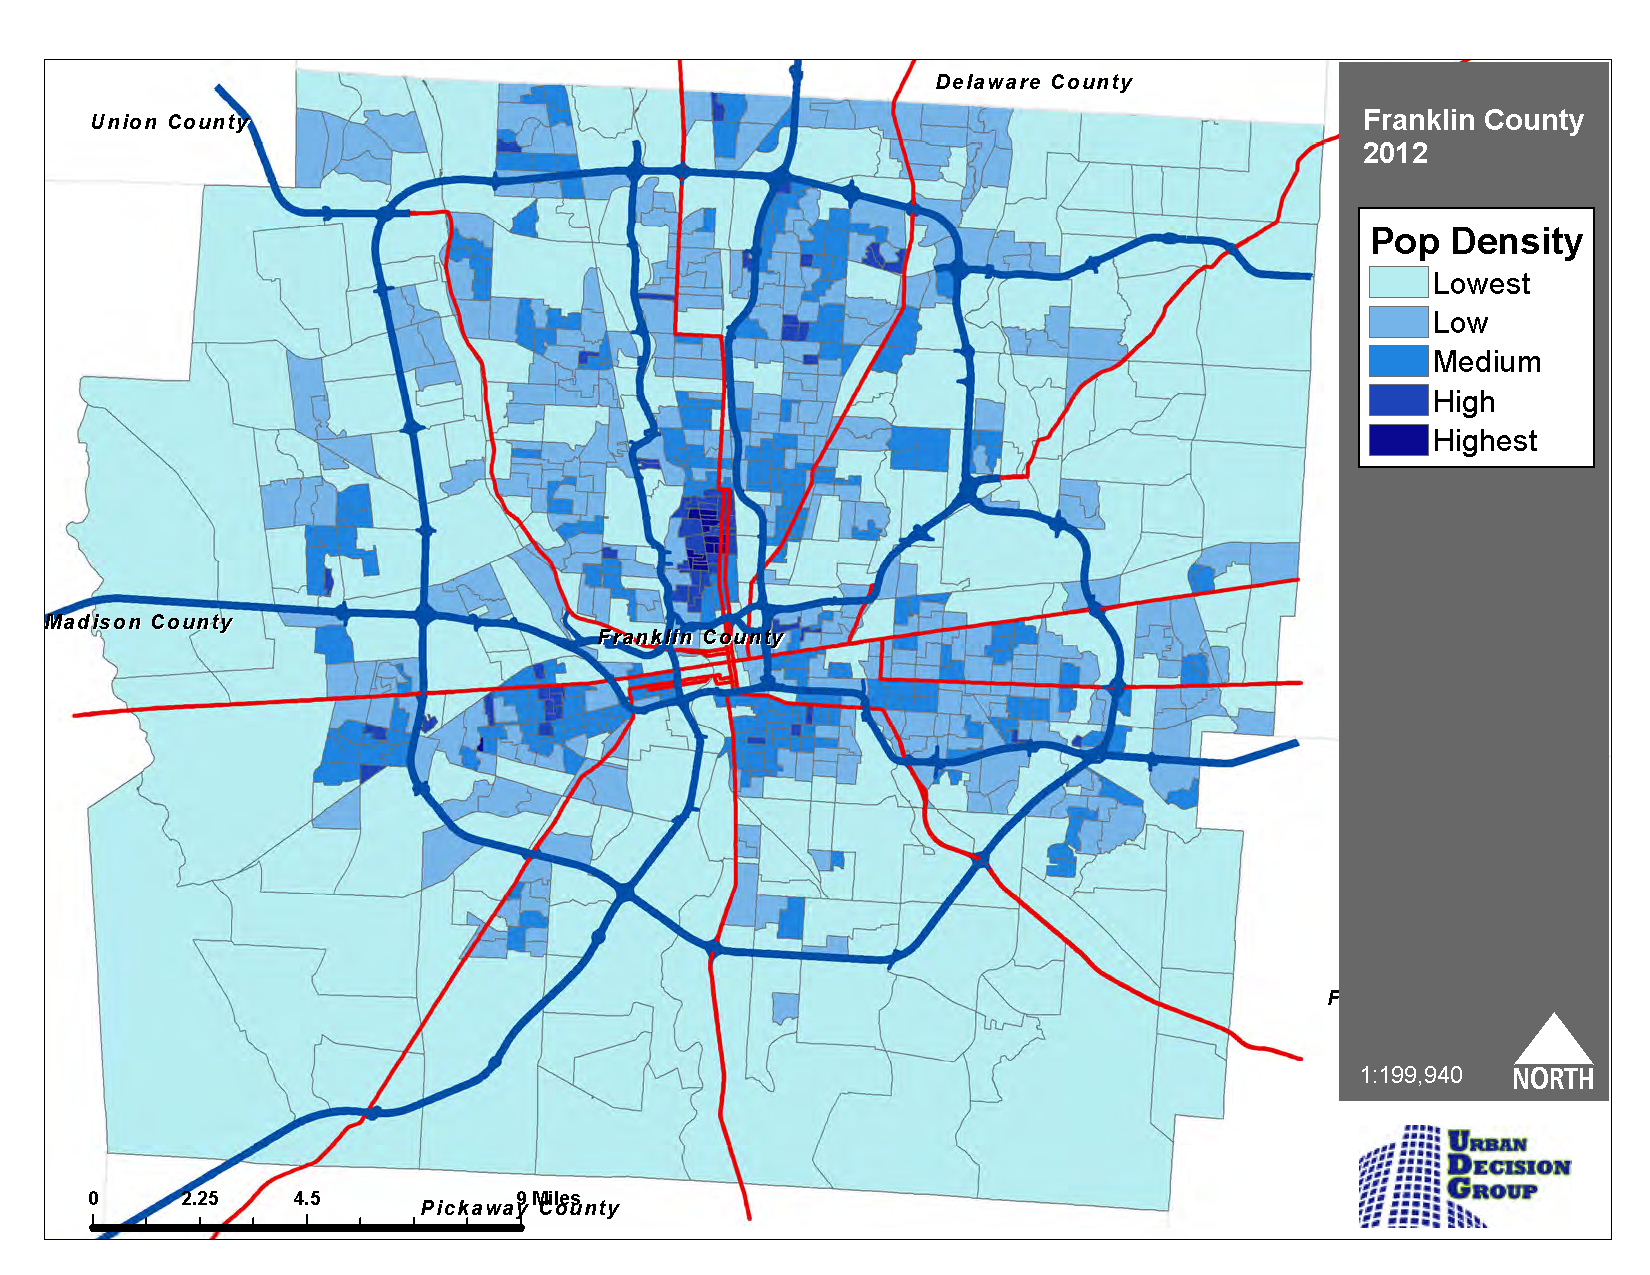 Where Are They Going Population Growth In Franklin County